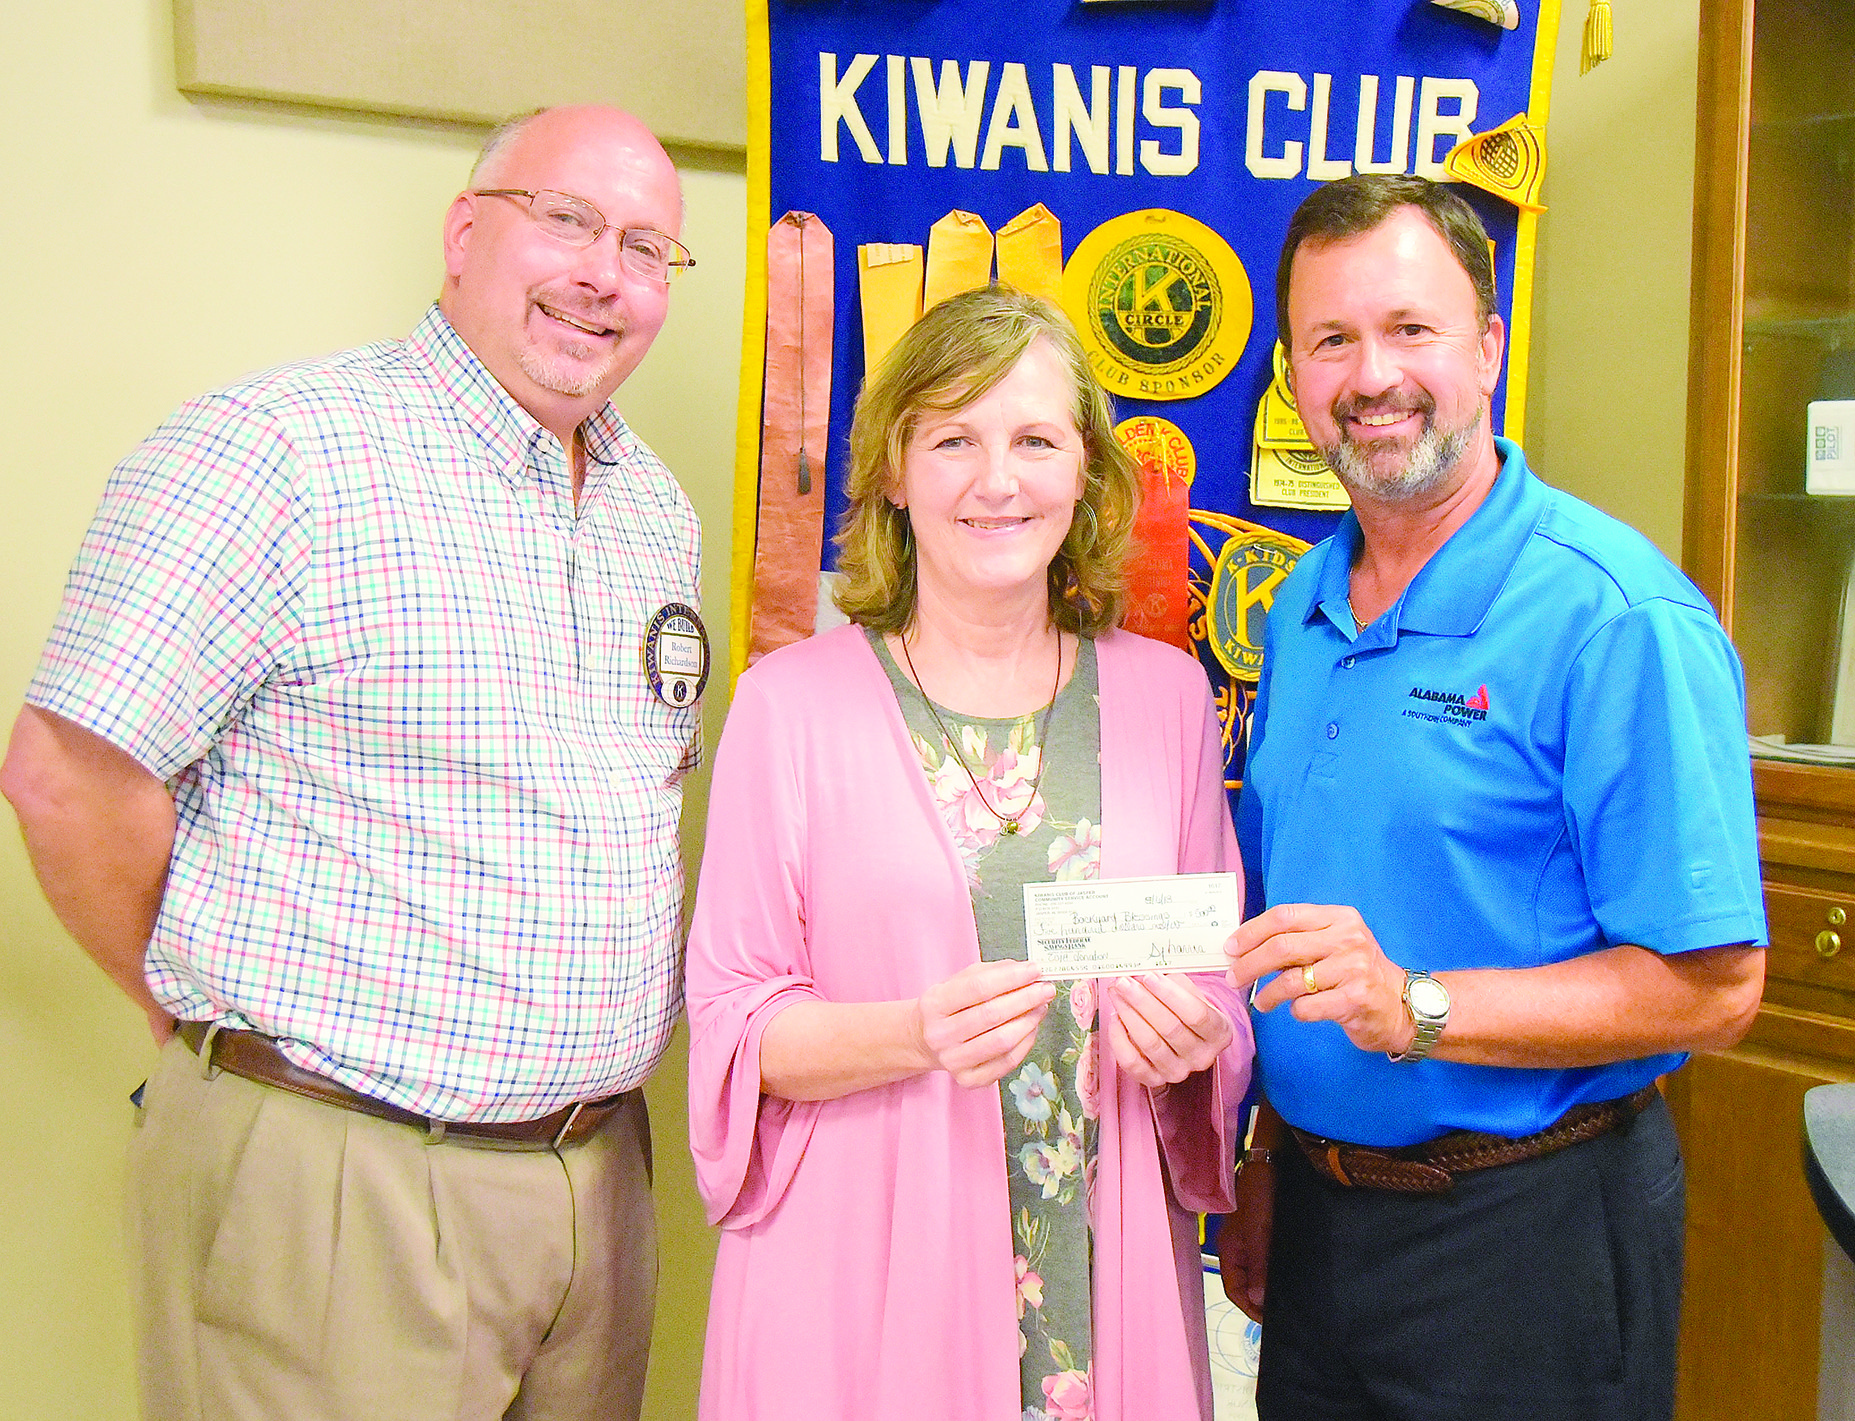 Robert Richardson, at left, and Billy Doss, at right, of the Kiwanis Club of Jasper present a donation to Leneda Jones of Backyard Blessings to be used to help with operating expenses for the organization that helps feed students throughout Walker County.